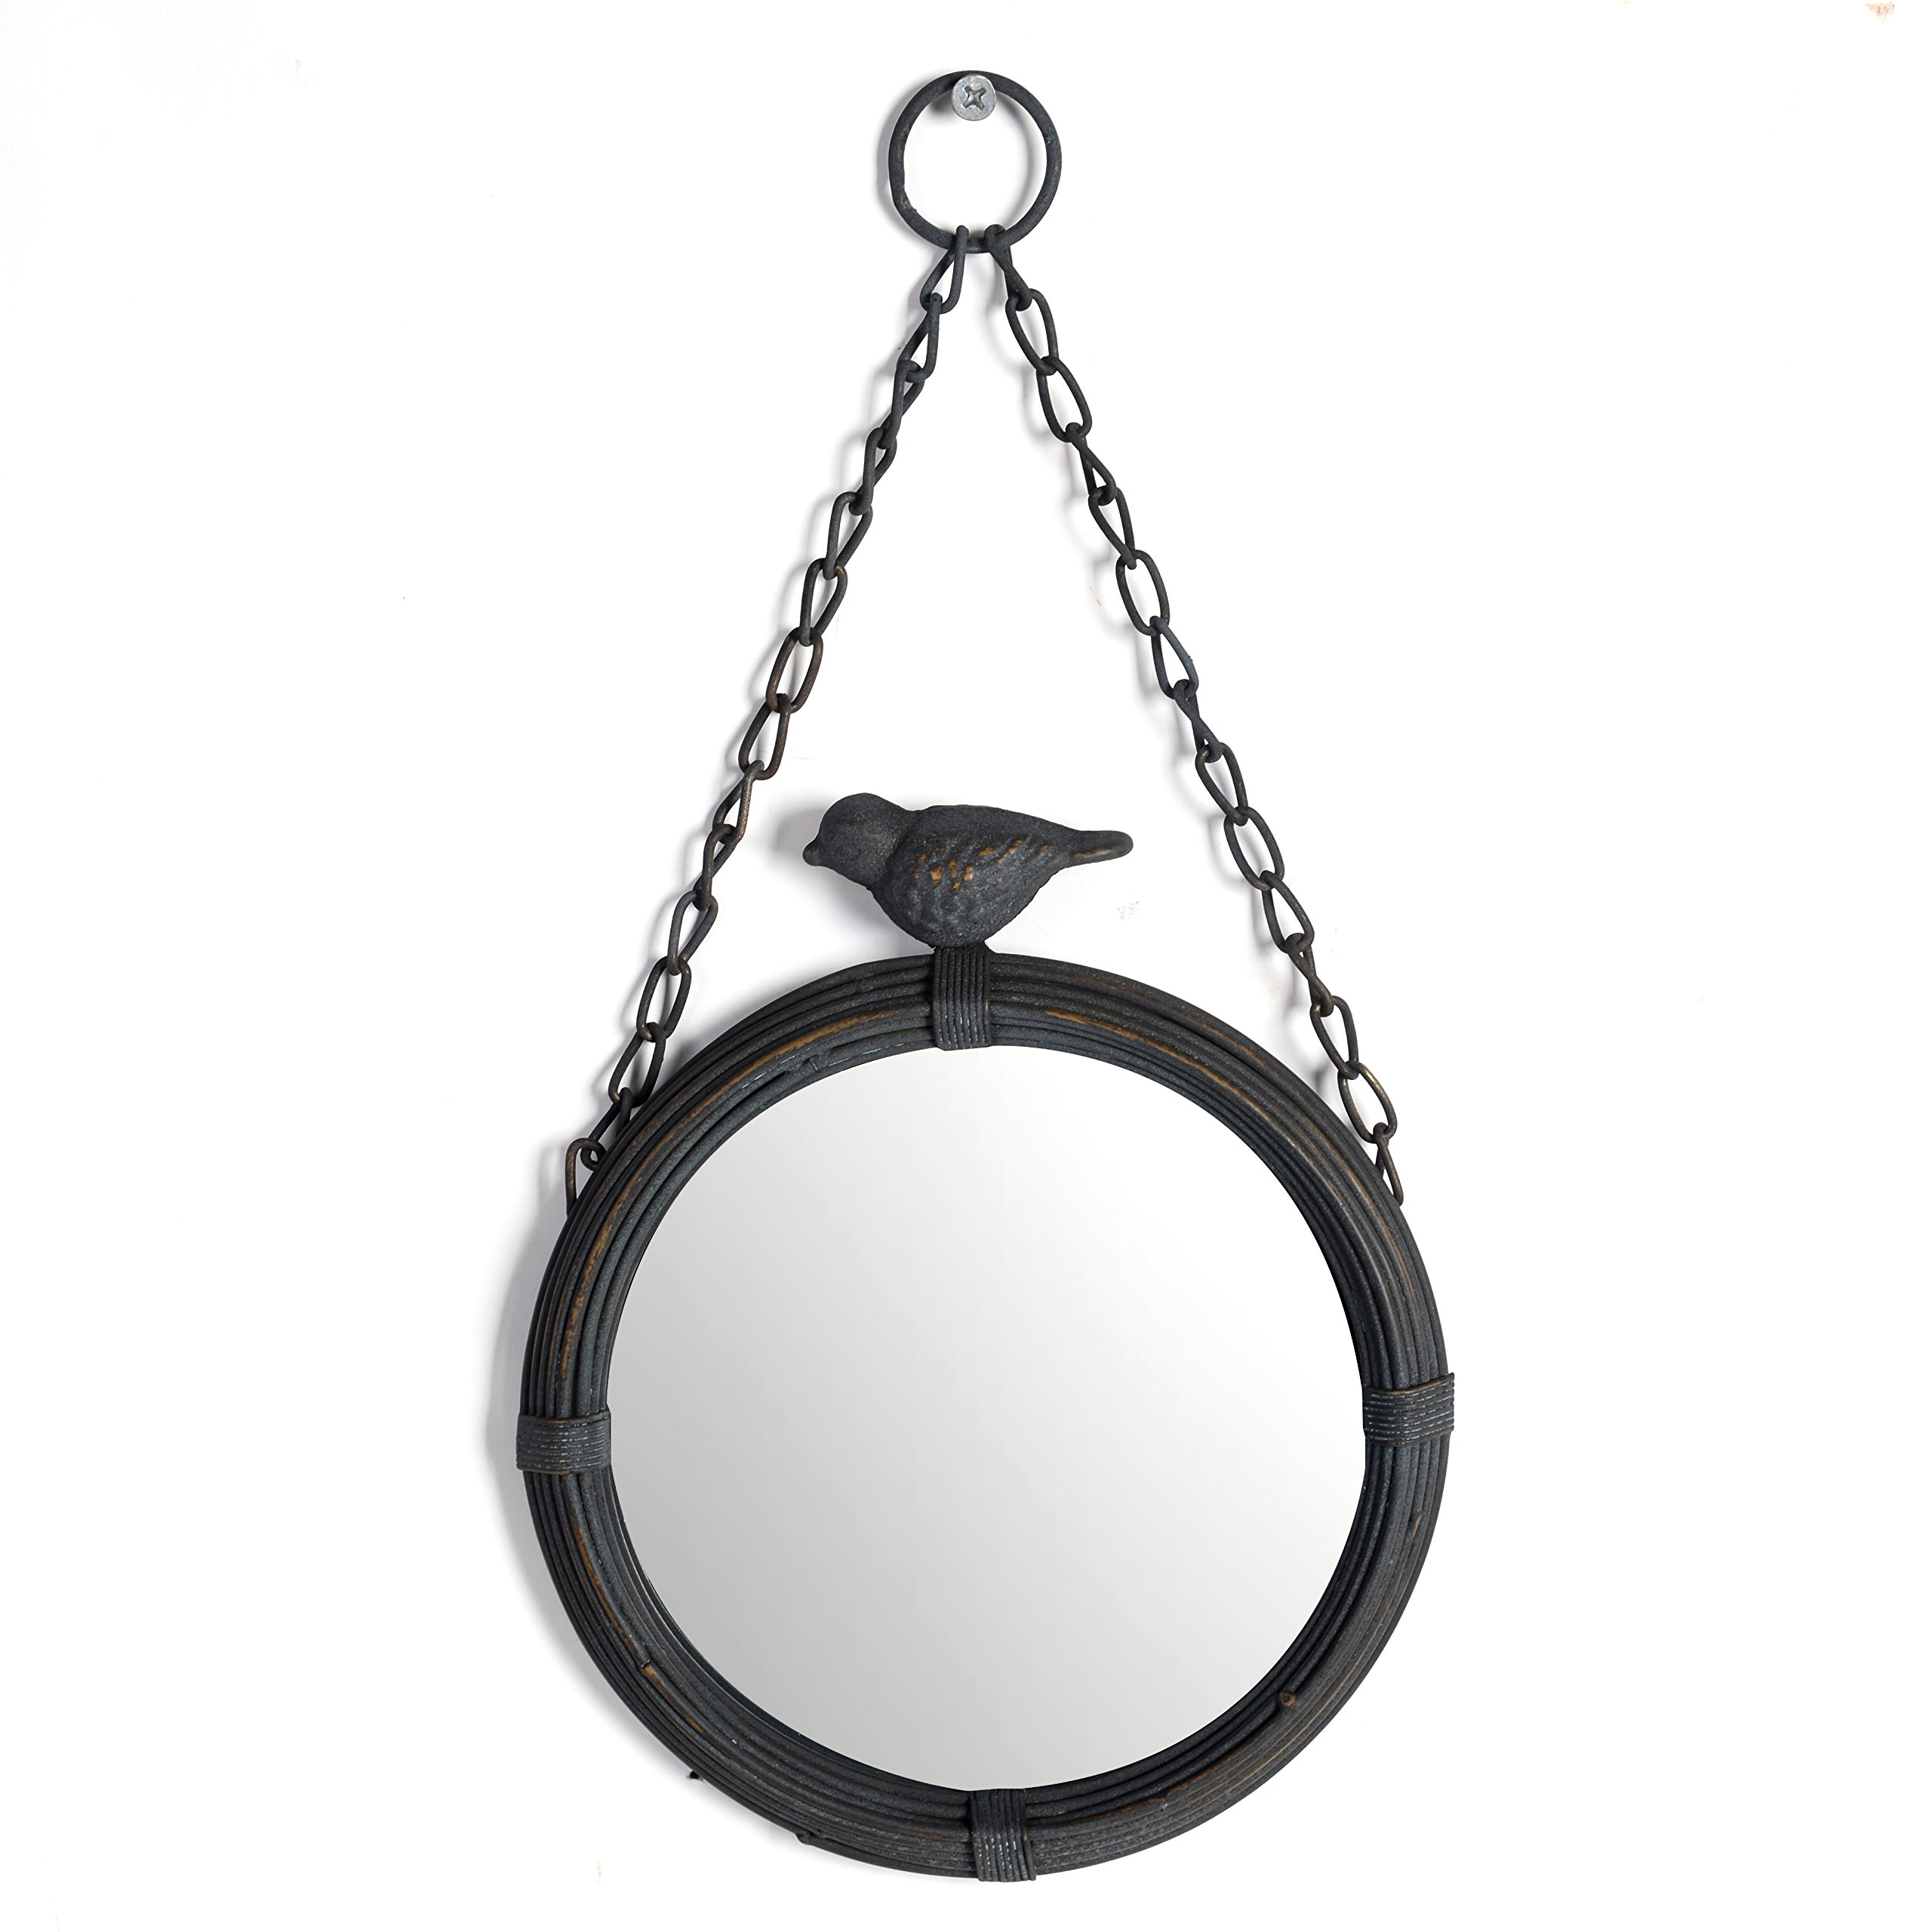 NIKKY HOME Shabby Chic Metal Wall Hanging Round Mirror with Sparrow, Matt Black